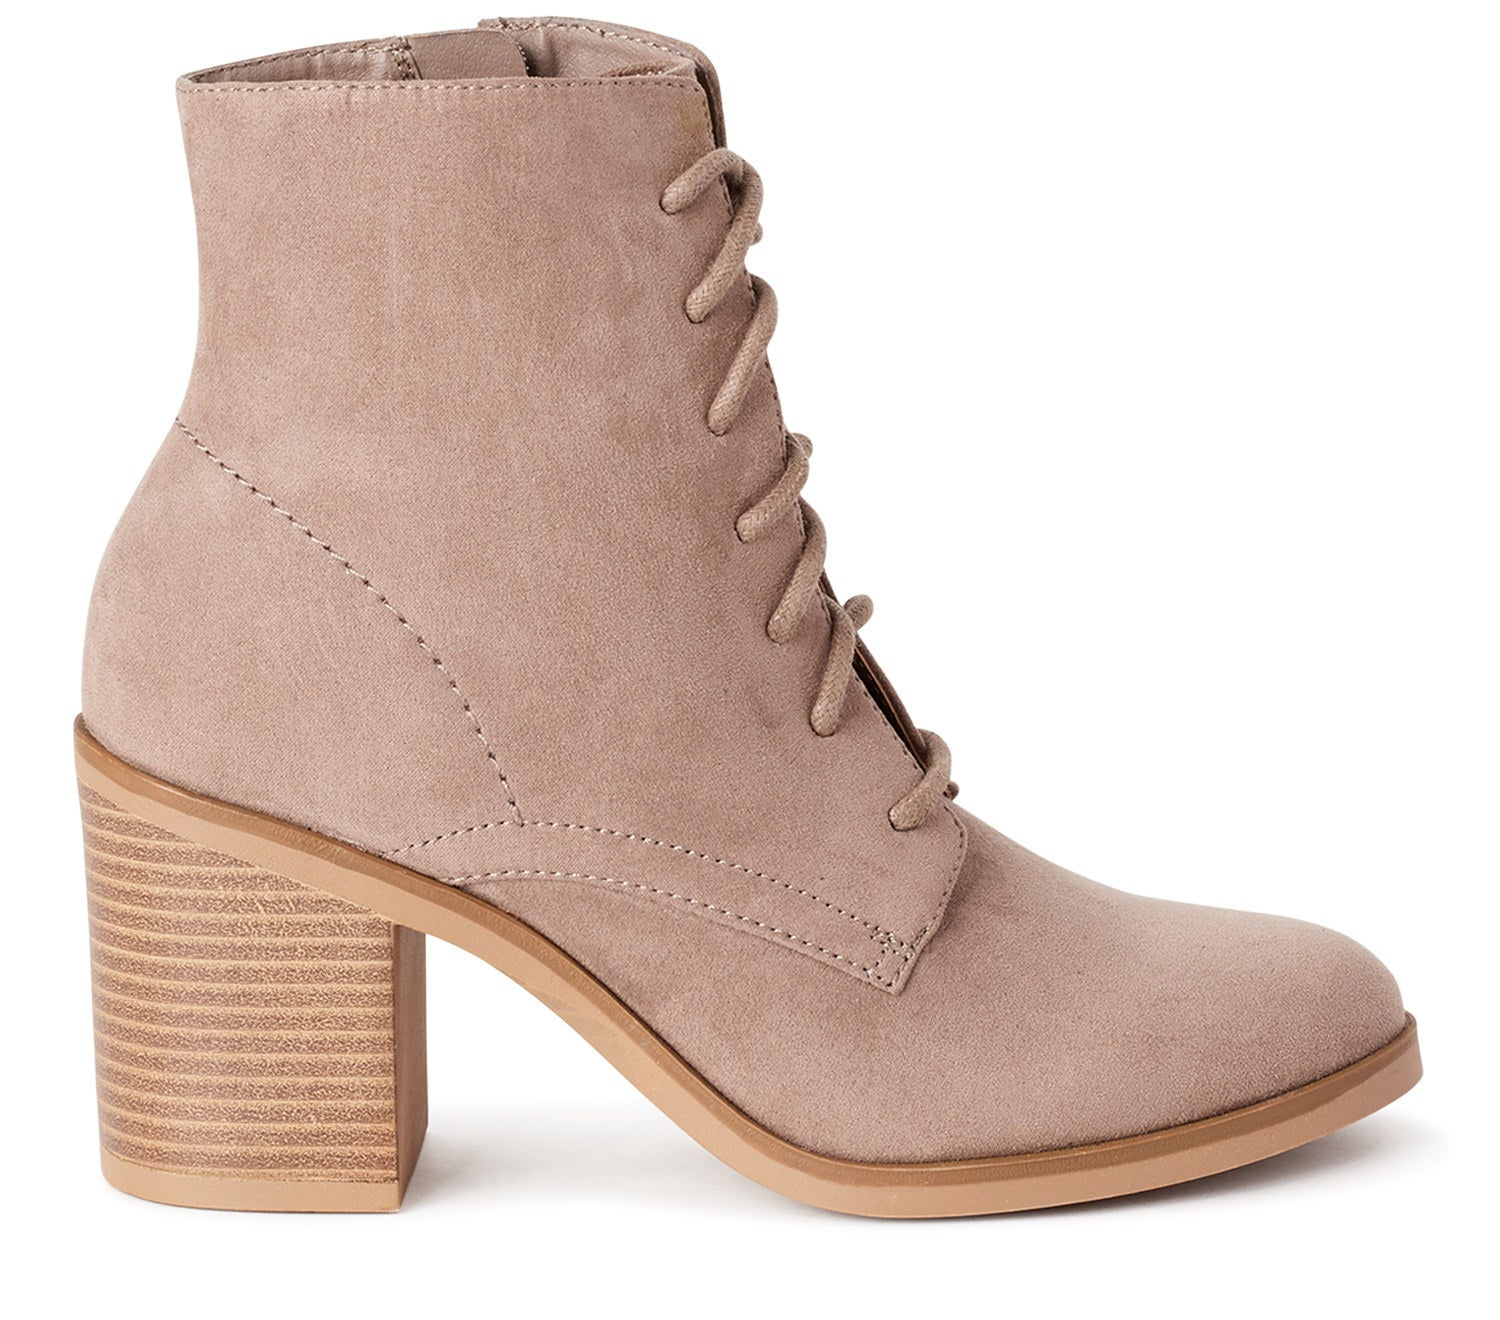 The suede bootie